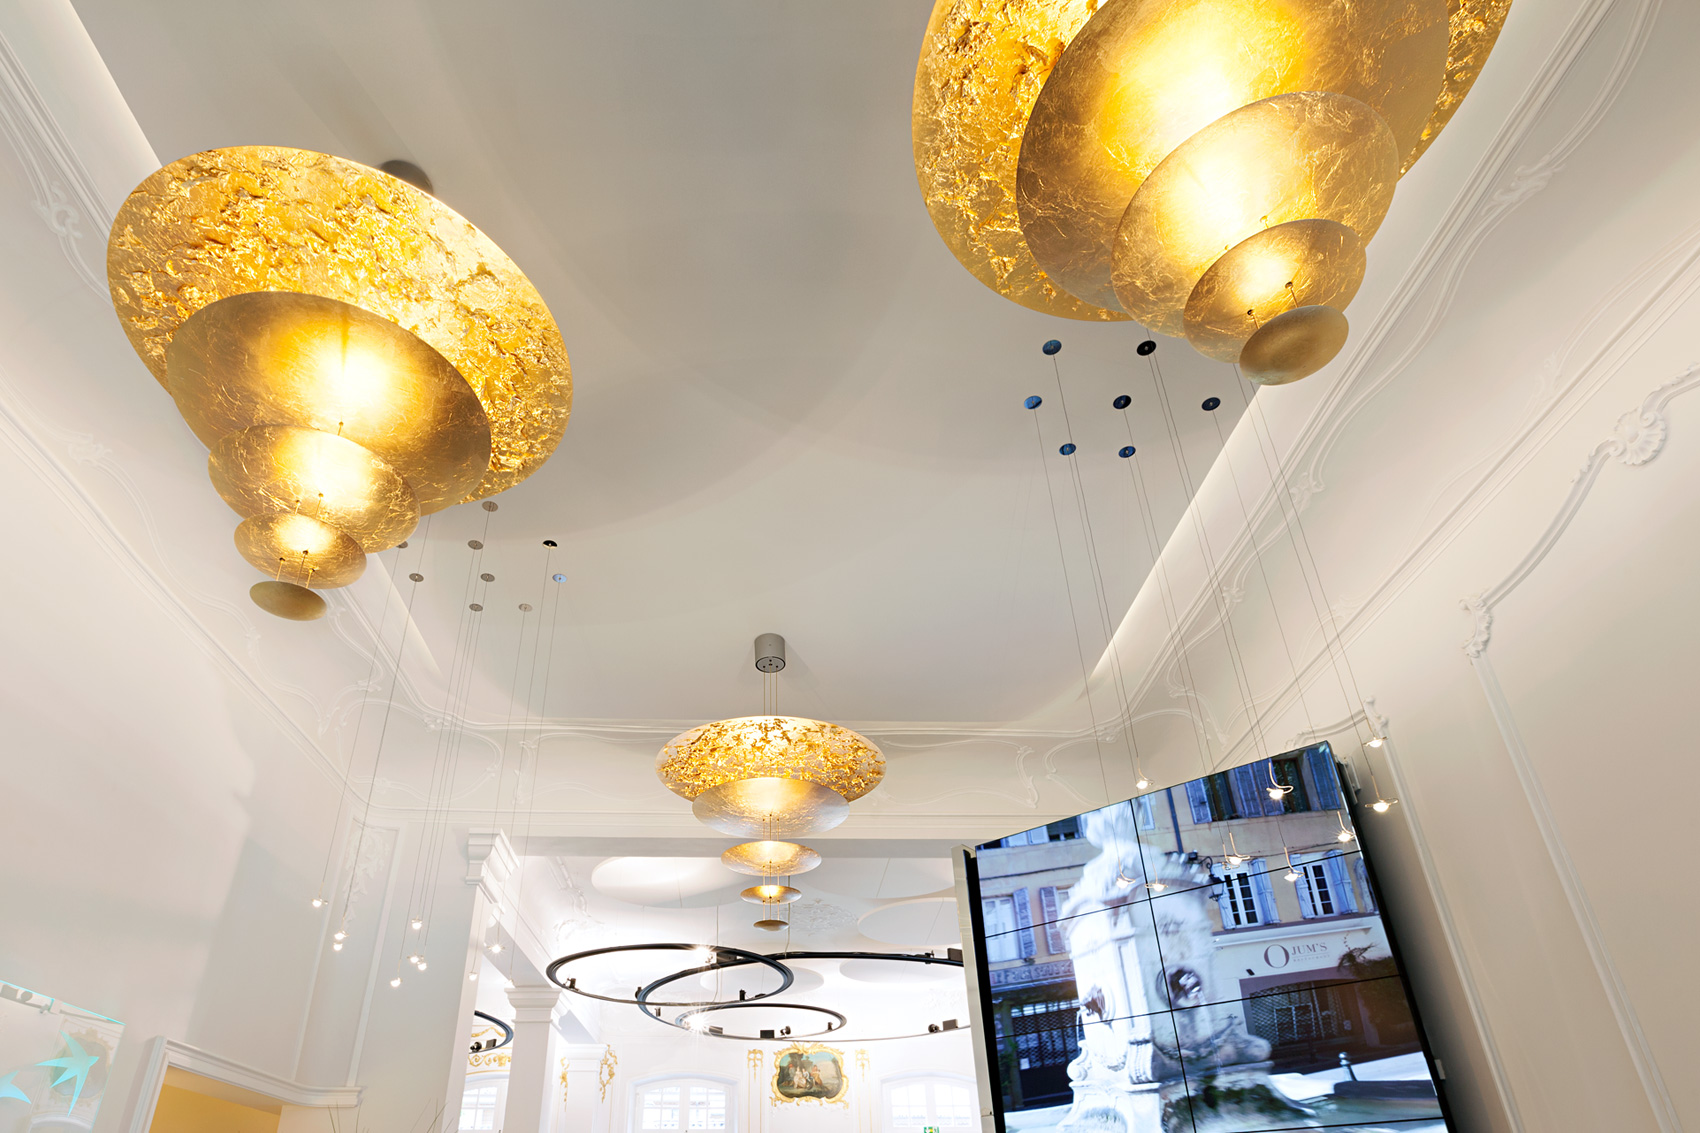 lampade catellani&smith da soffitto